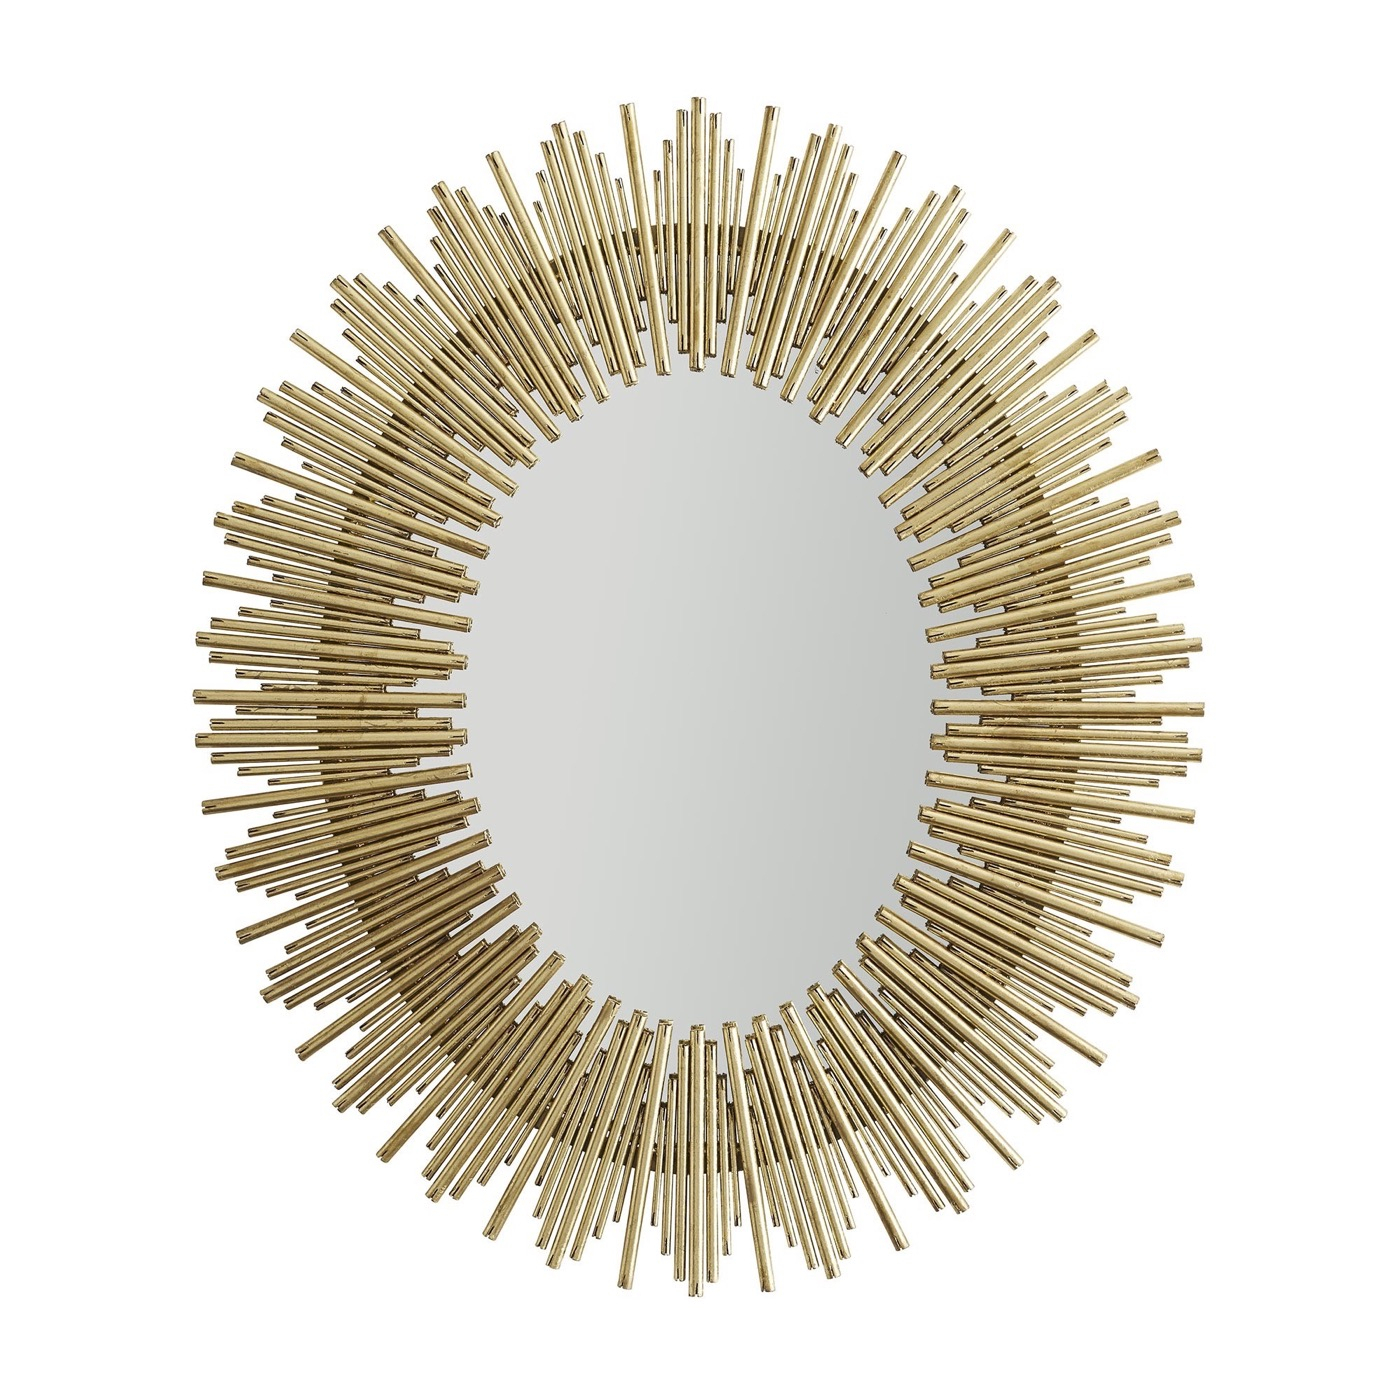 Kentwood Oval Wall Mirror | Gold With Regard To Kentwood Round Wall Mirrors (Photo 14 of 30)